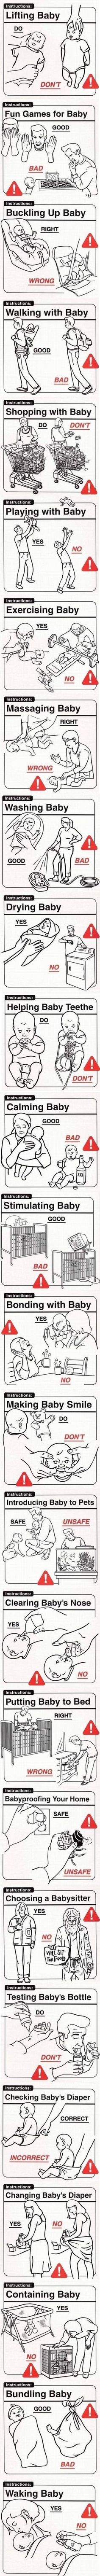 Baby Handling techniques-the right way! ;)